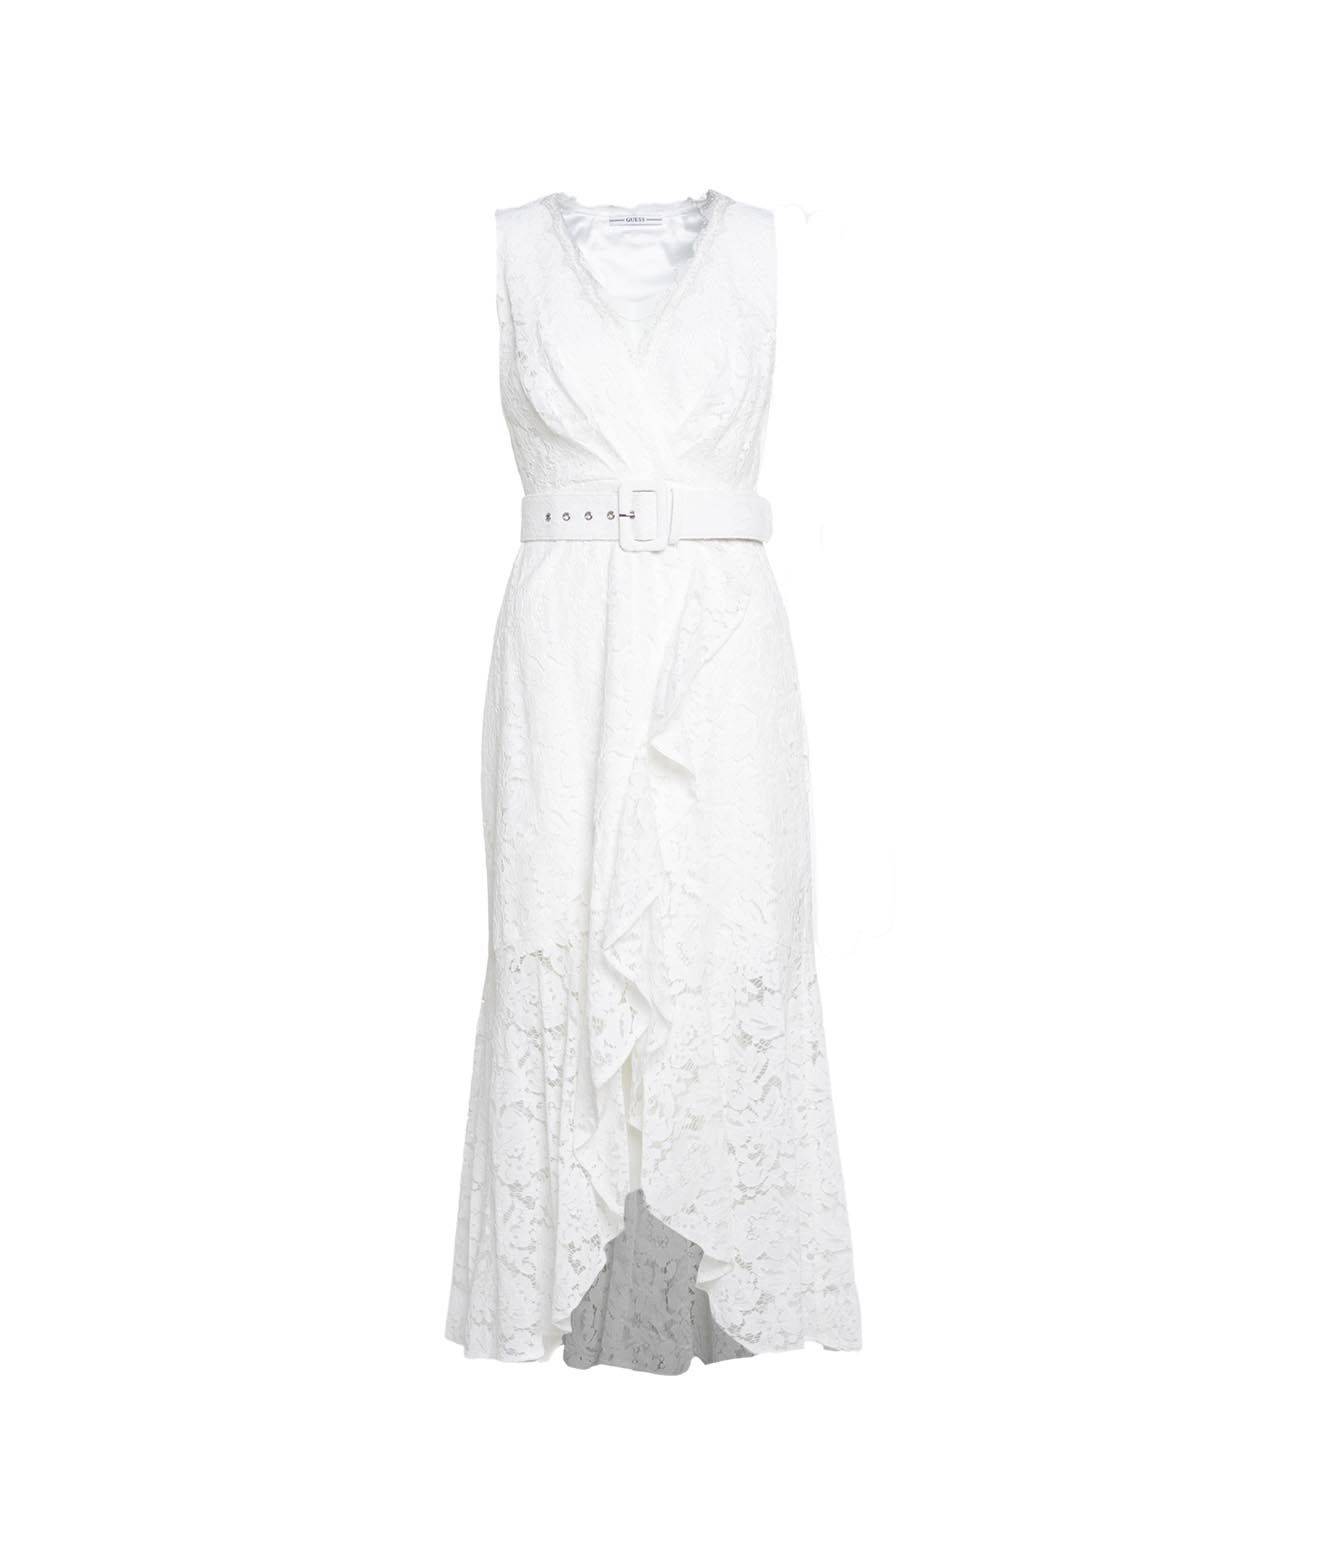 Guess Dresses GUESS WOMEN'S W1GK0VWDW3011TWHT WHITE OTHER MATERIALS DRESS